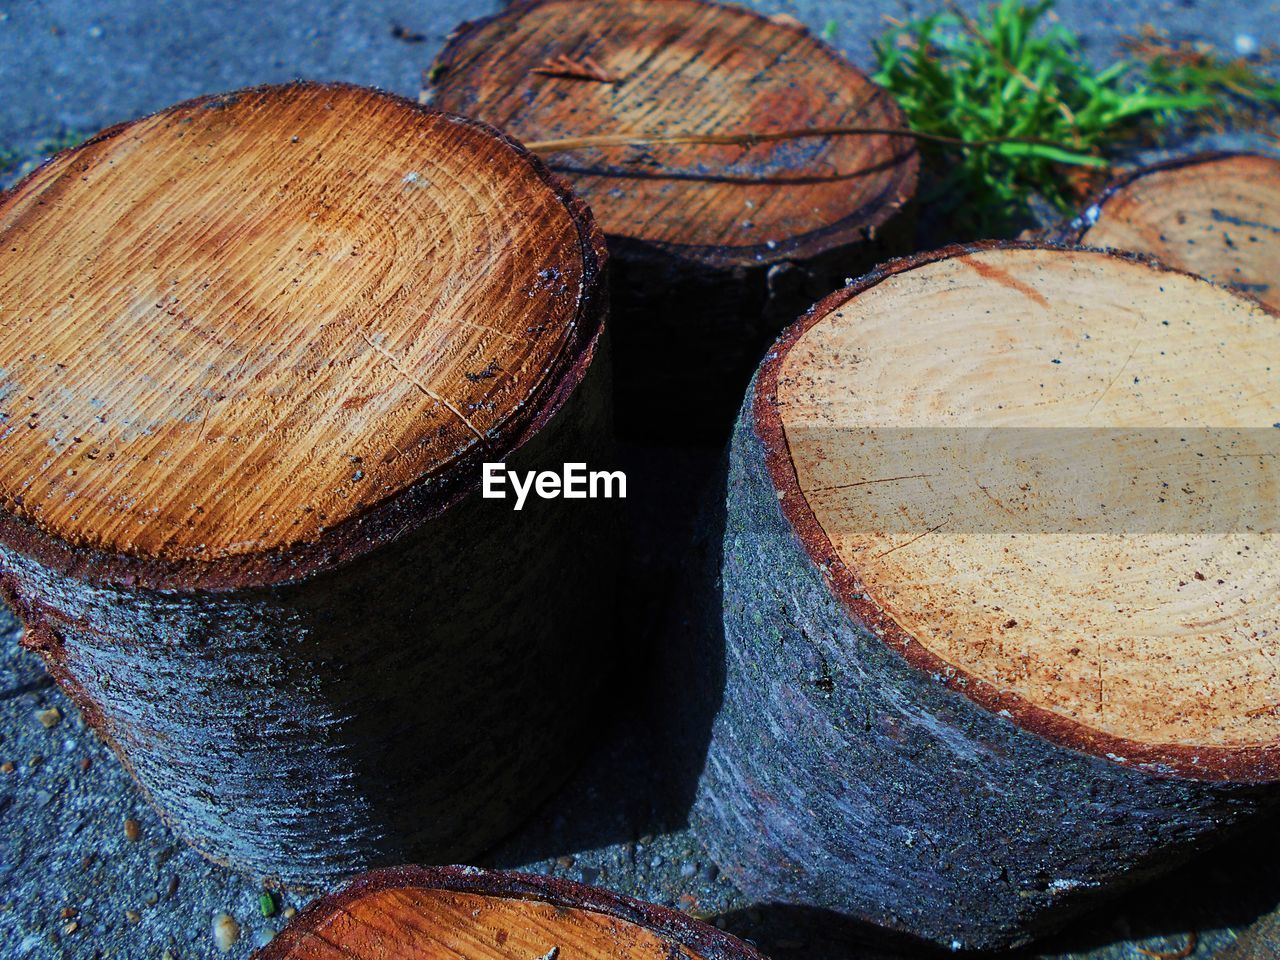 log, timber, stack, no people, wood - material, deforestation, tree ring, textured, day, close-up, outdoors, forestry industry, nature